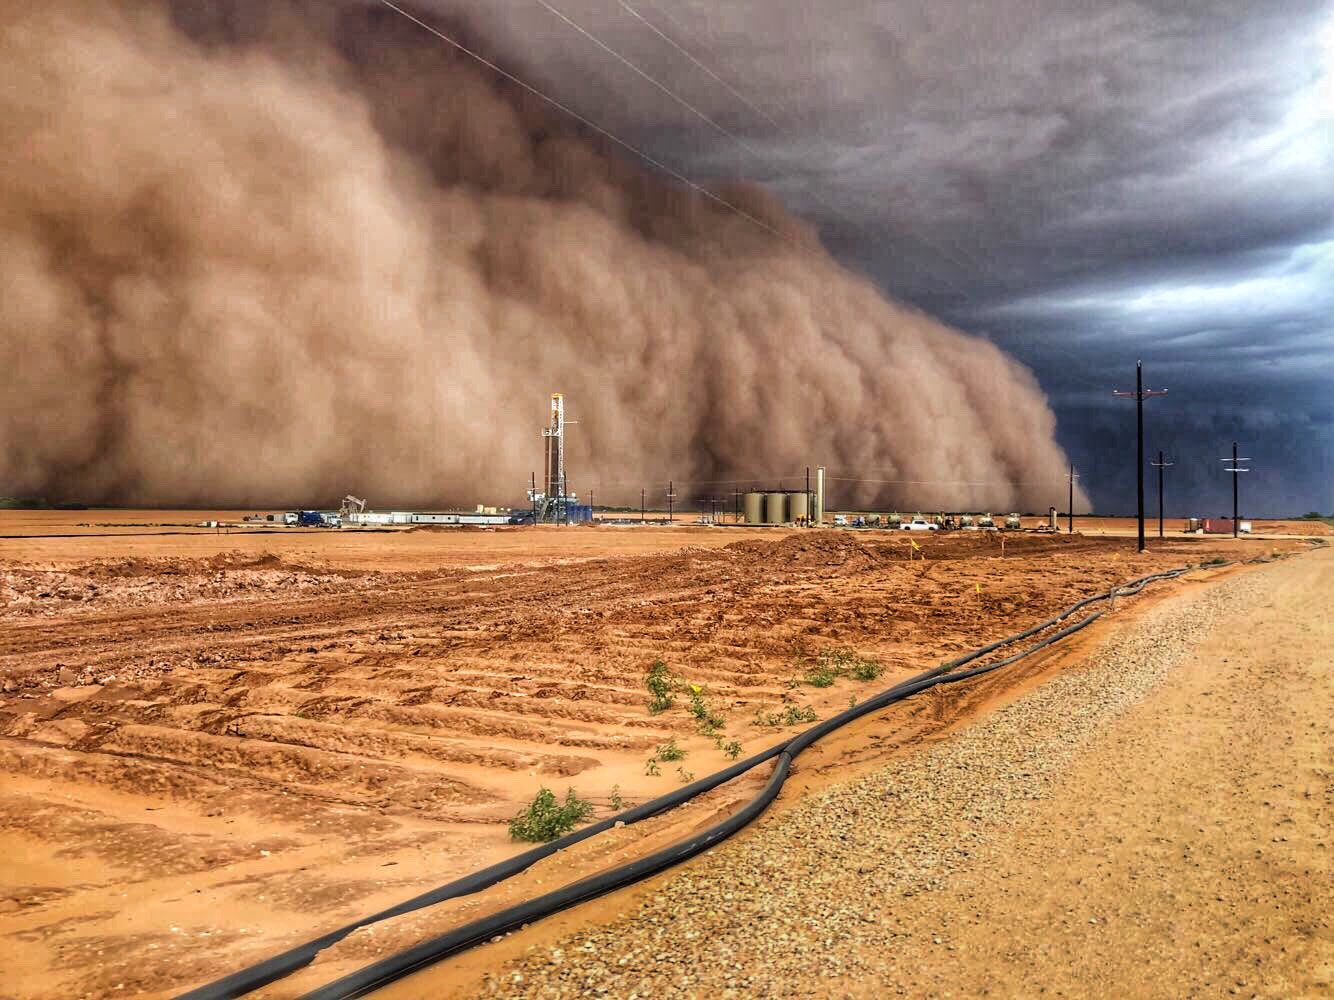 """Michael Armstrong on Twitter: """"Looks like something straight out of the  Dust Bowl. This was a dust storm (also called a haboob) today in Big  Spring, TX! 📷 courtesy of Joe Scott…"""